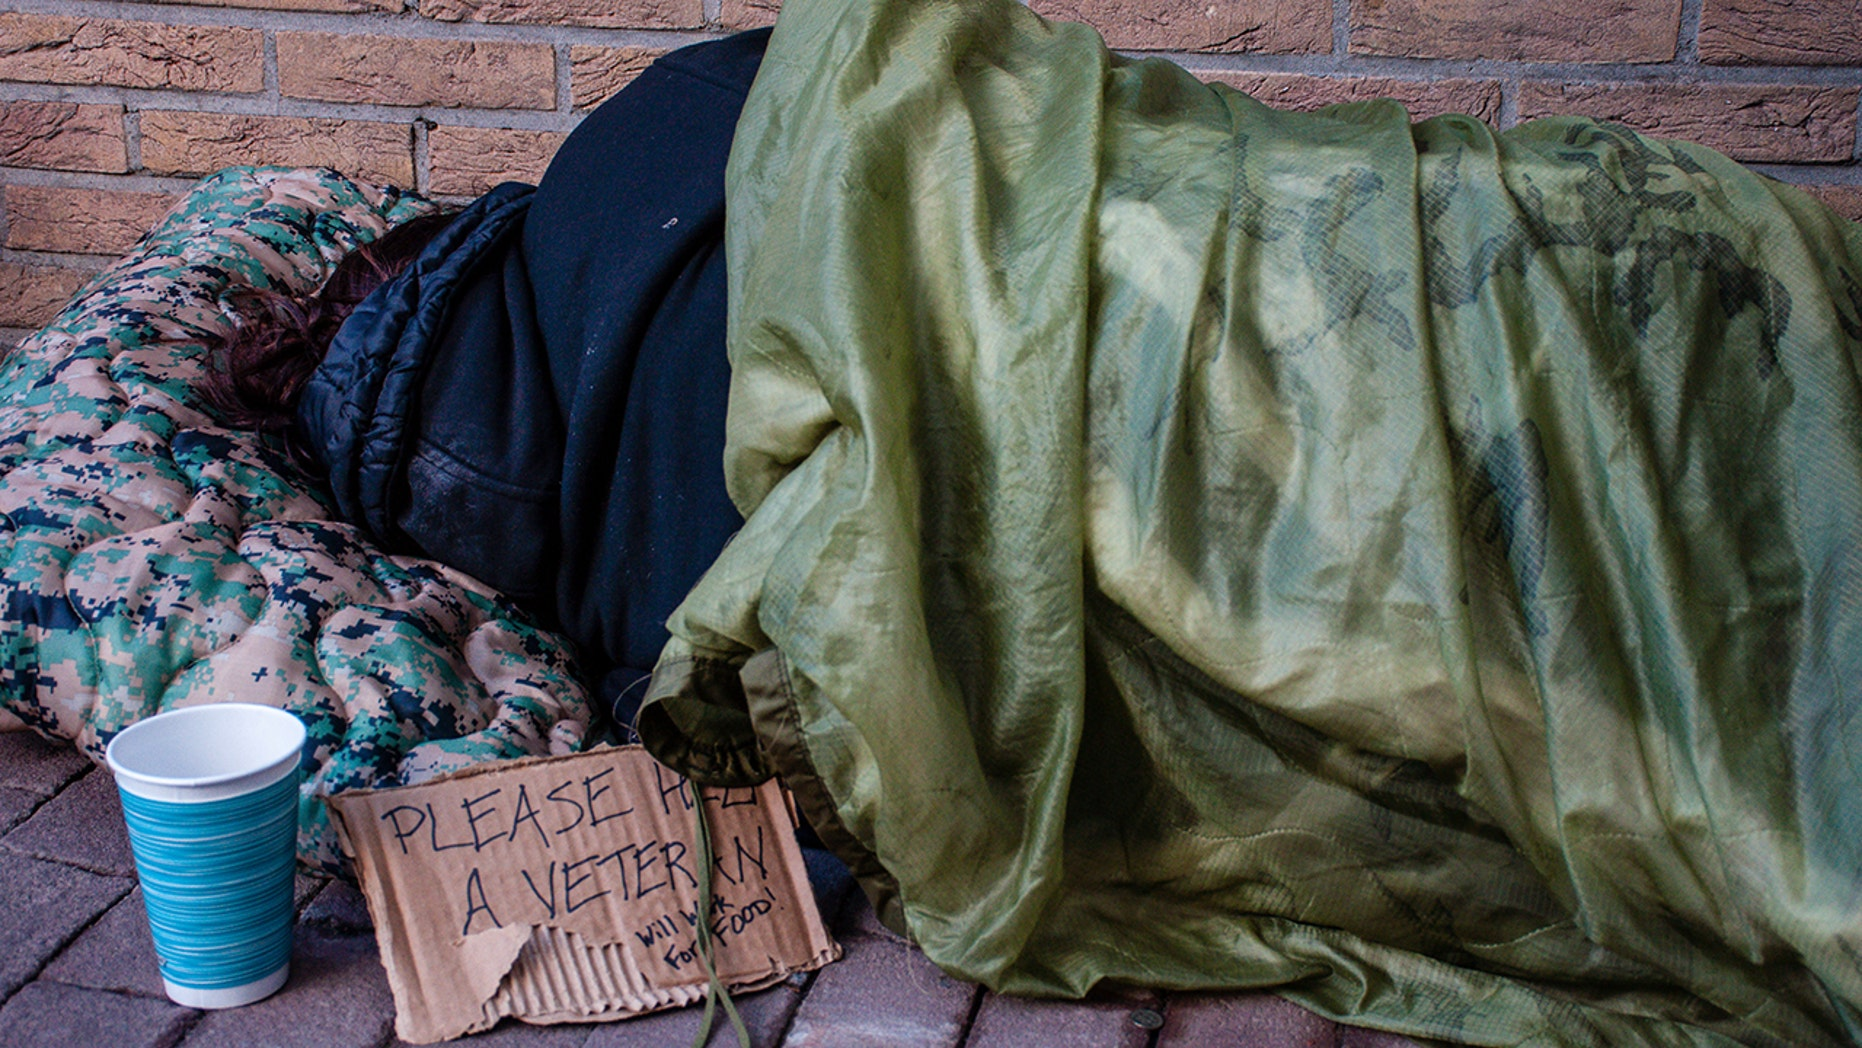 Minnesota is inching closer to its goal of ending veteran homelessness